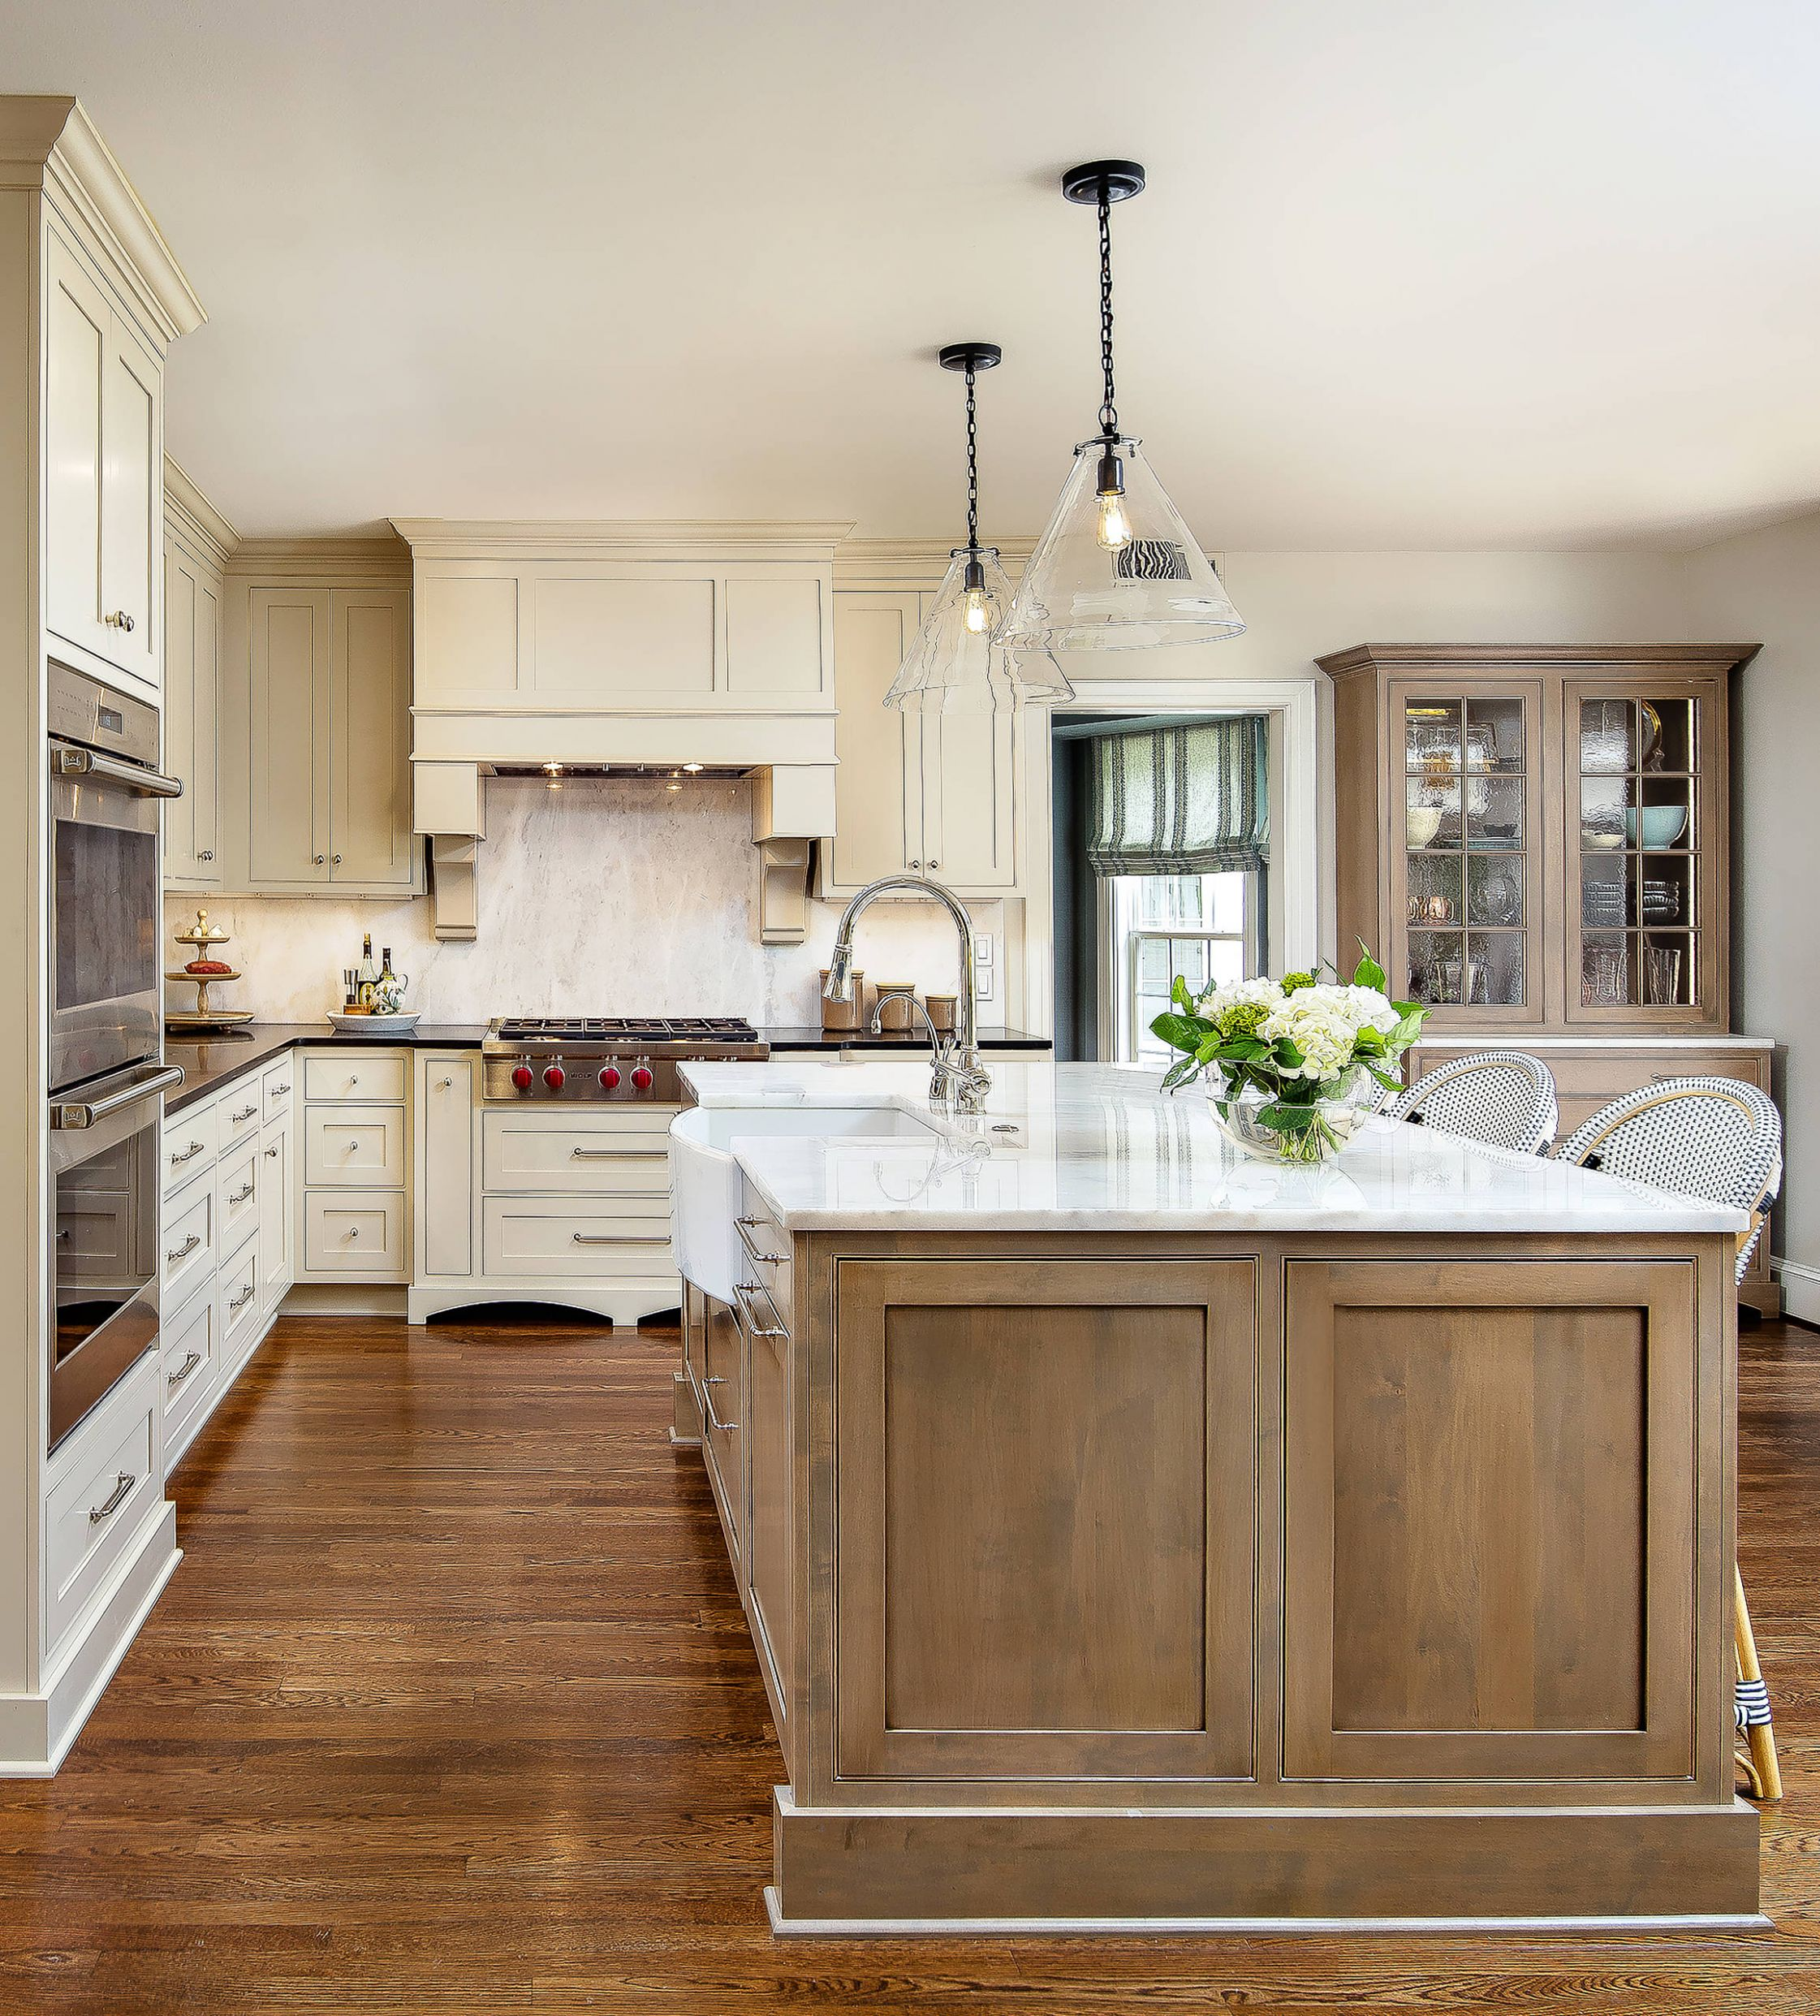 12 BEST Traditional Kitchen Pictures & Ideas | Houzz - kitchen ideas traditional